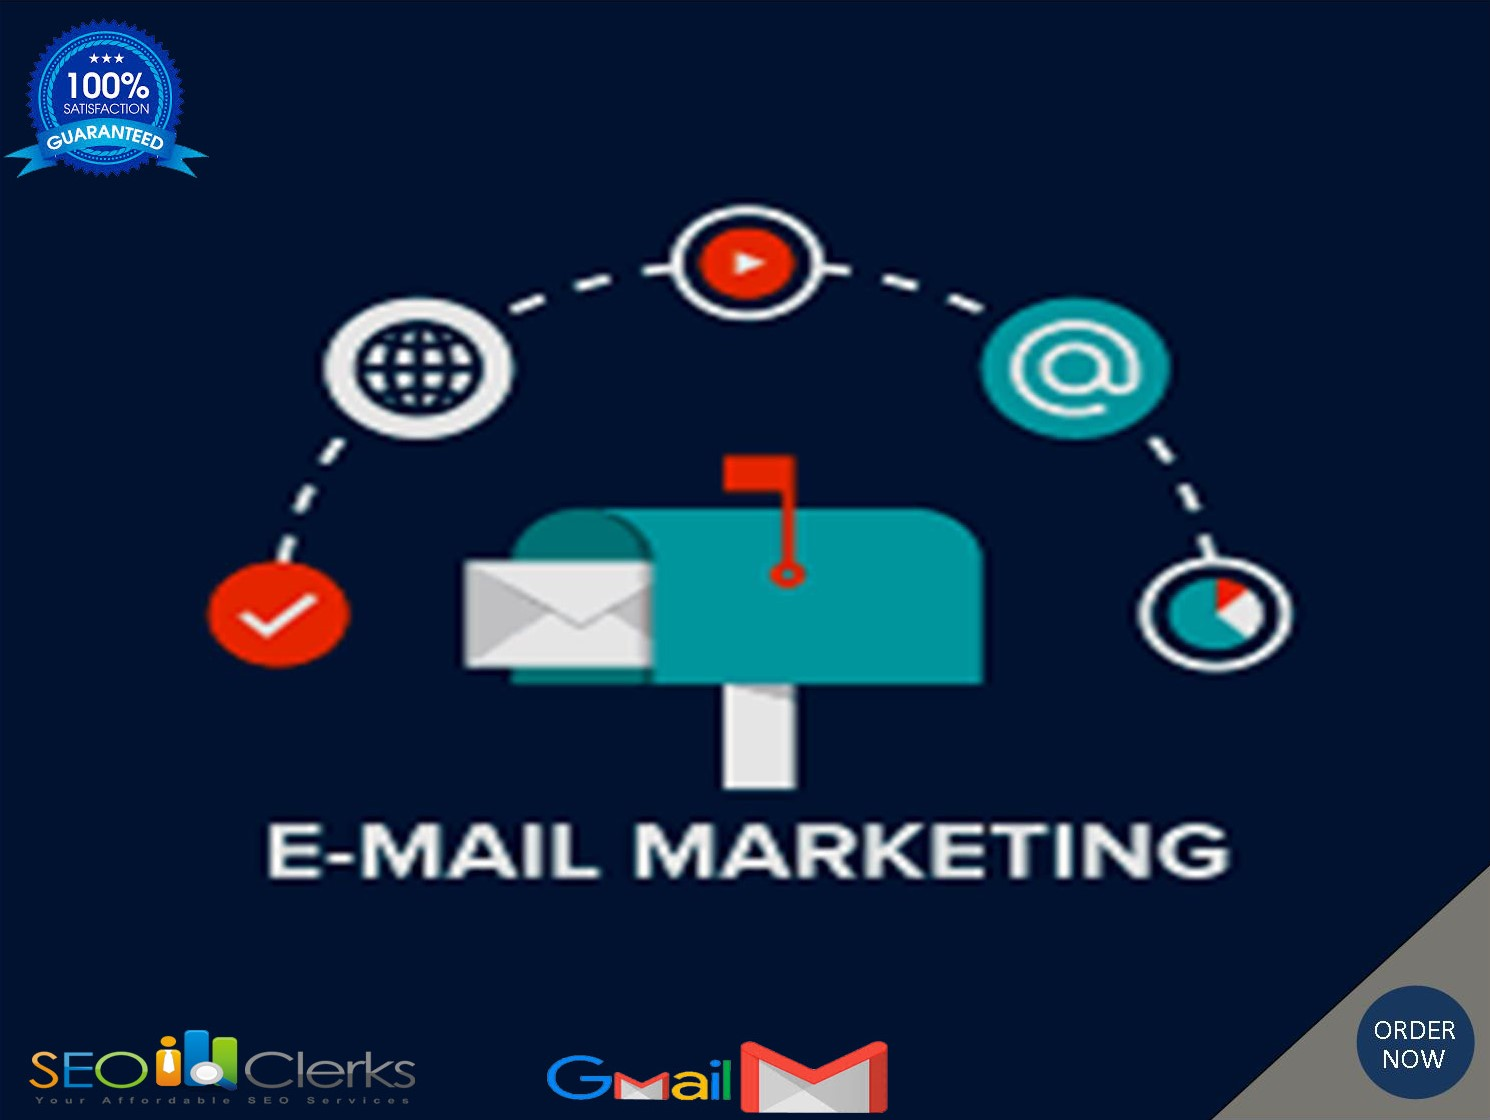 Provide you 5K niche Email list for Your Targeted Email Marketing